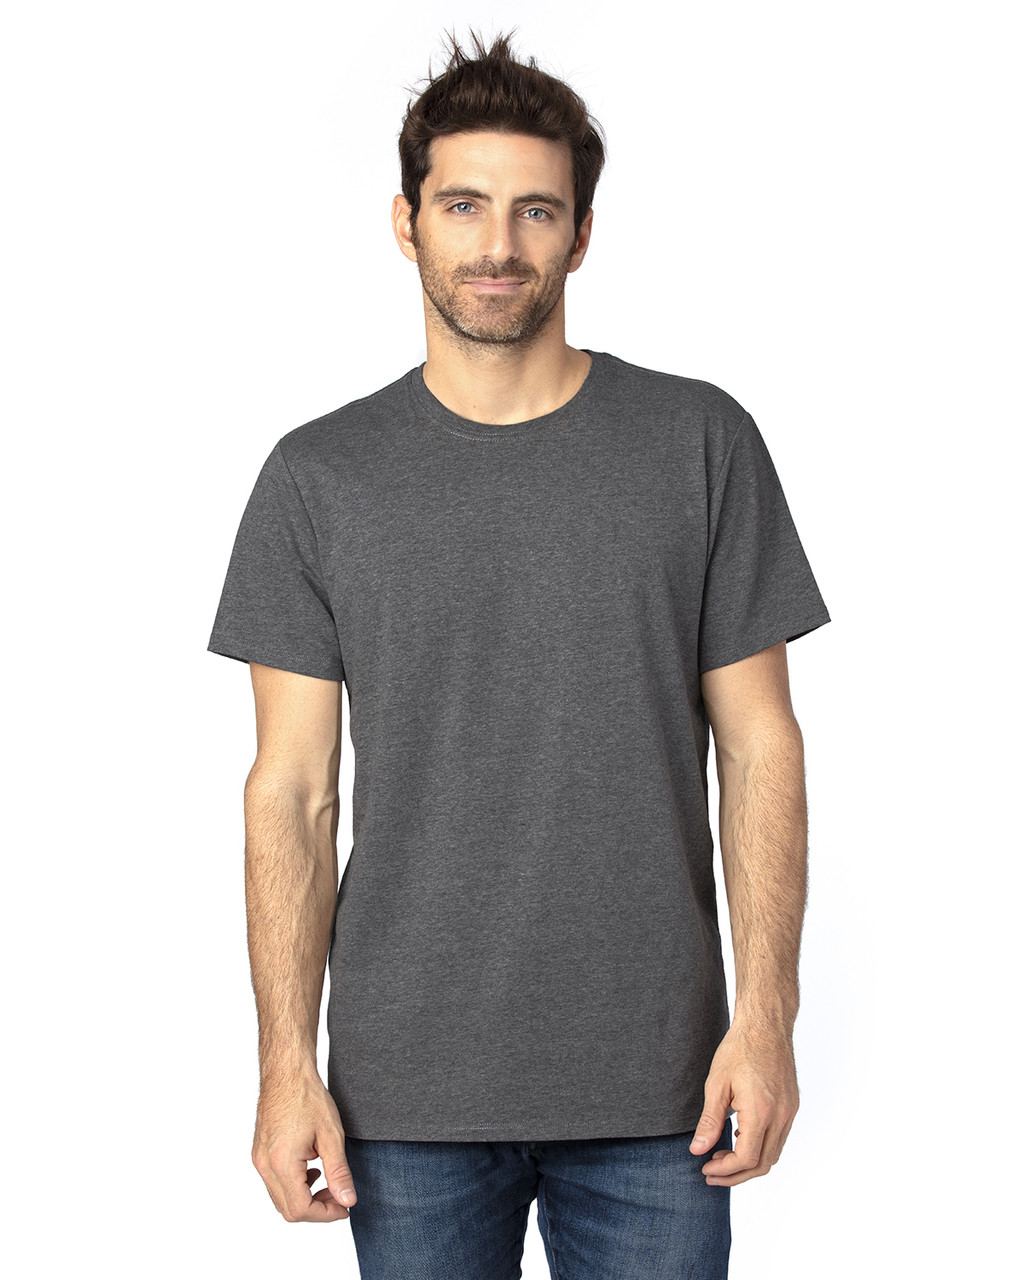 Charcoal Heather - 100A Threadfast Unisex Ultimate Short-Sleeve T-Shirt | BlankClothing.ca